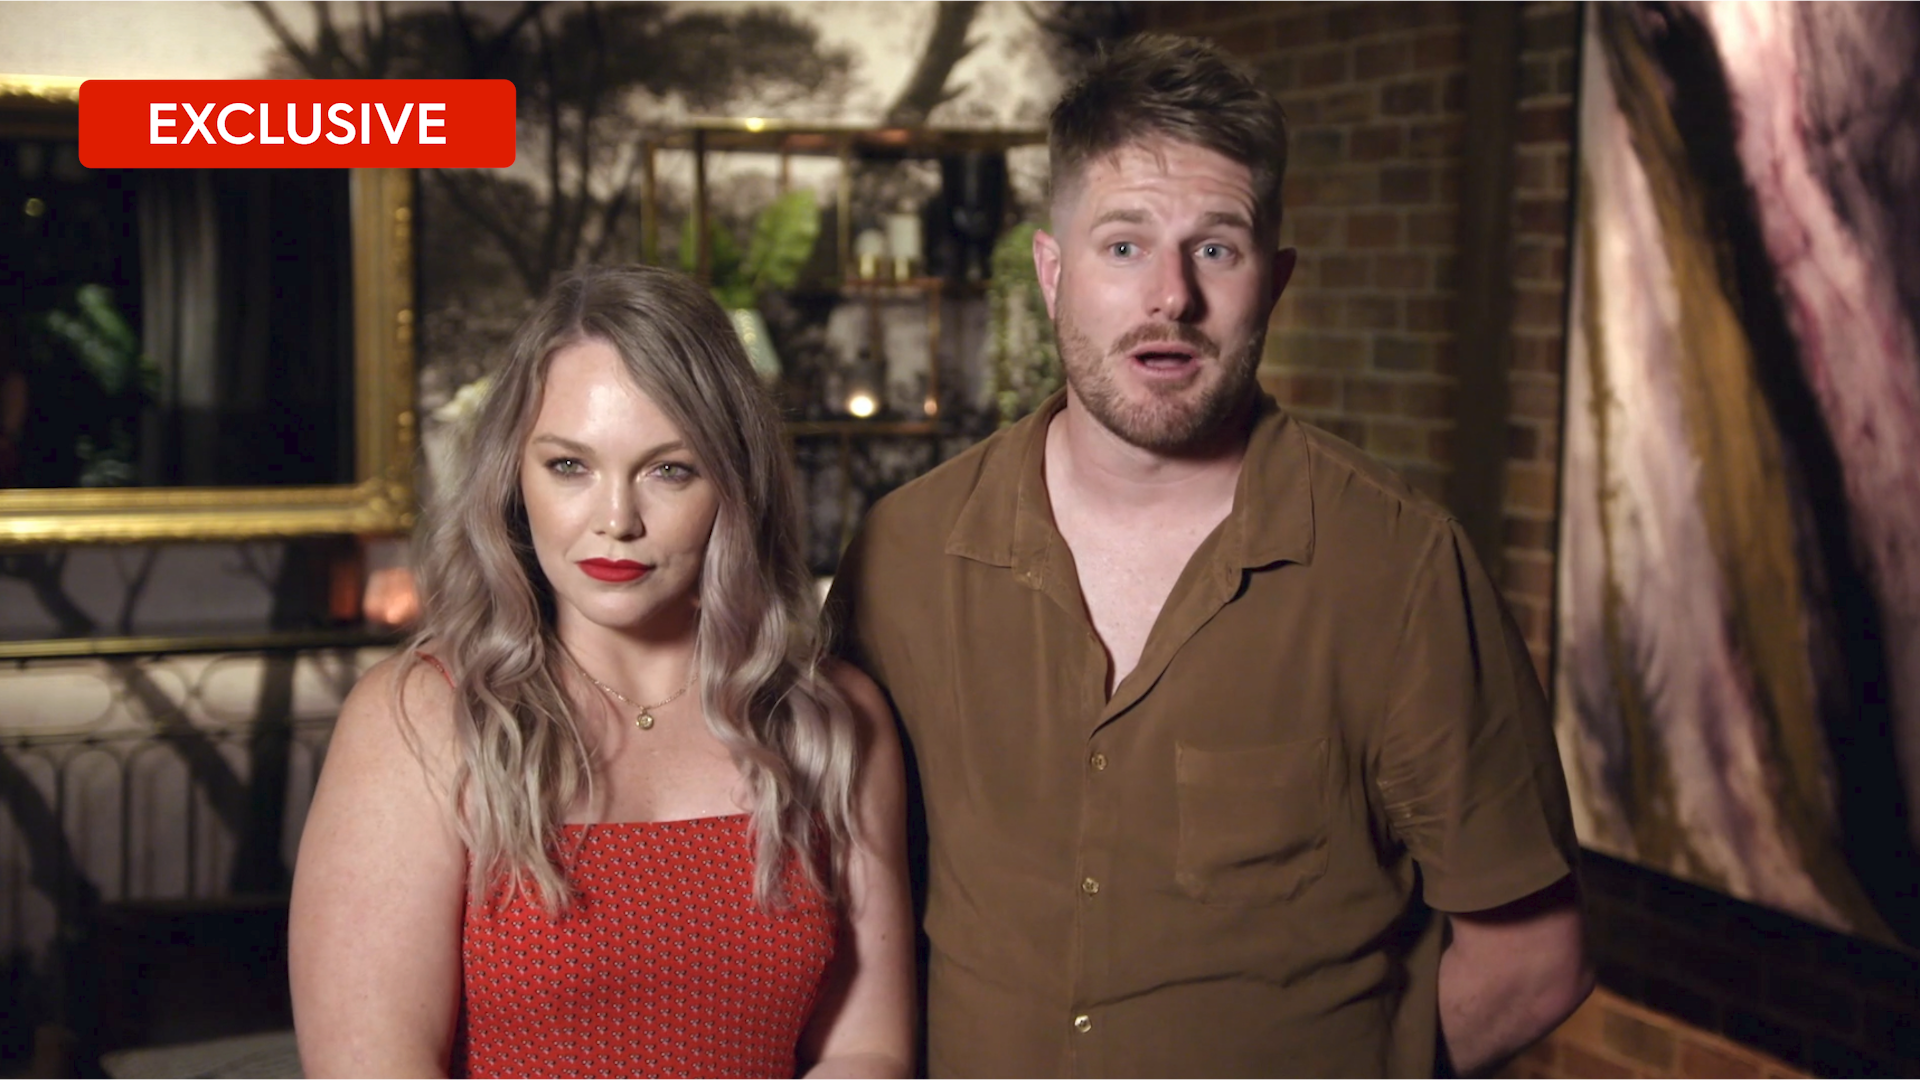 Exclusive: The MAFS couples discuss their first Commitment Ceremony